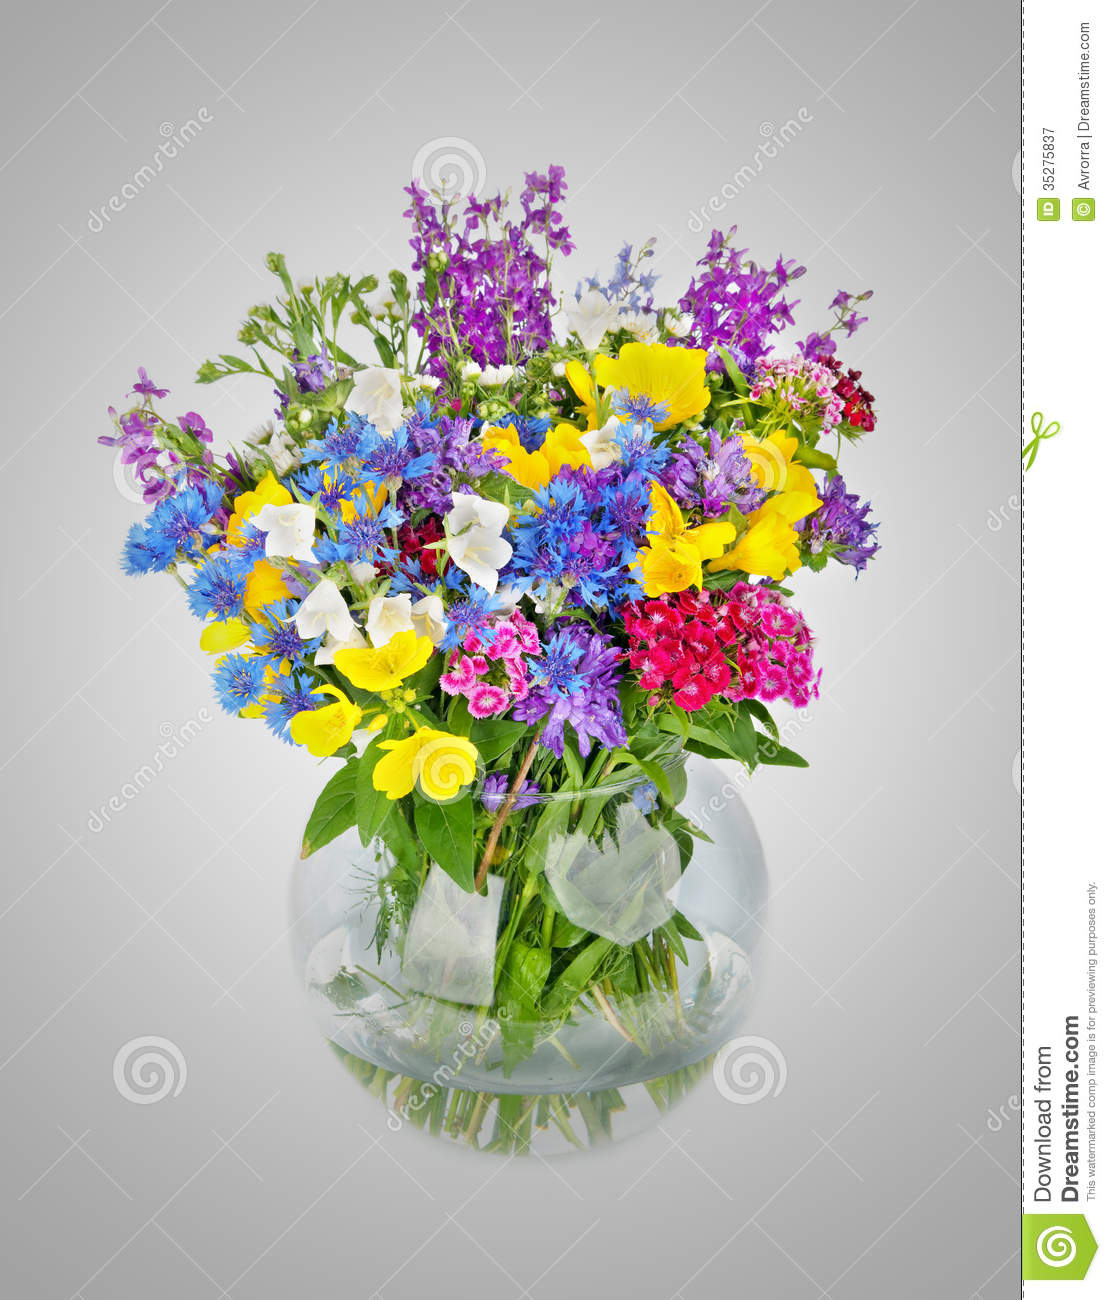 beautiful wild flowers bouquet in vase stock image image. Black Bedroom Furniture Sets. Home Design Ideas